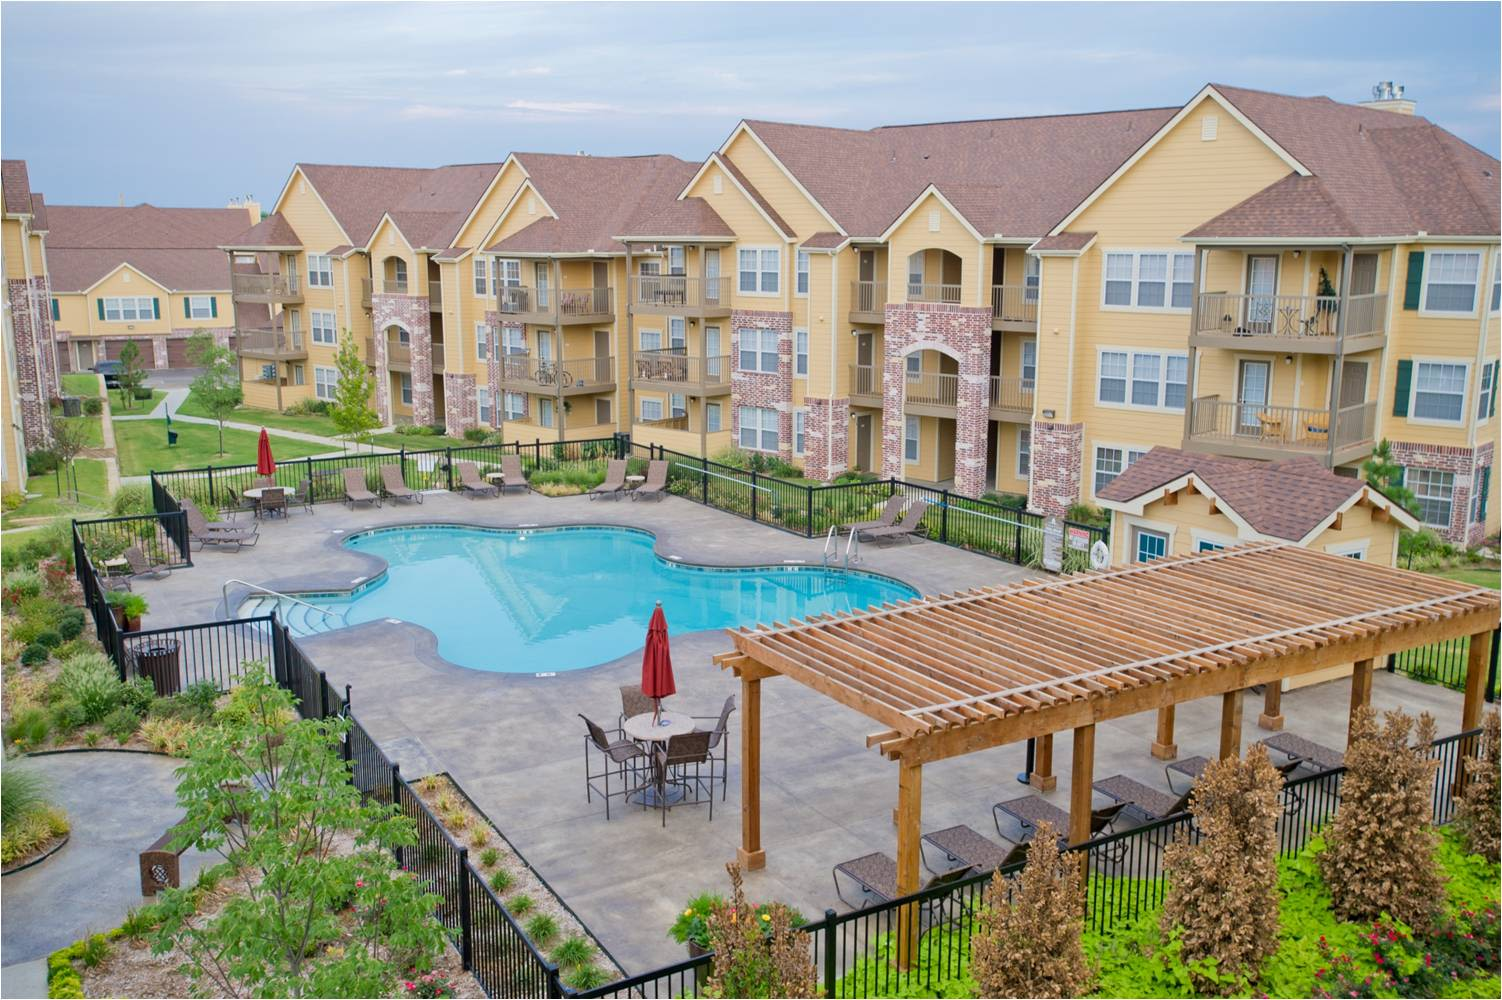 Tuscany Place Apartments managed by Case & Associates